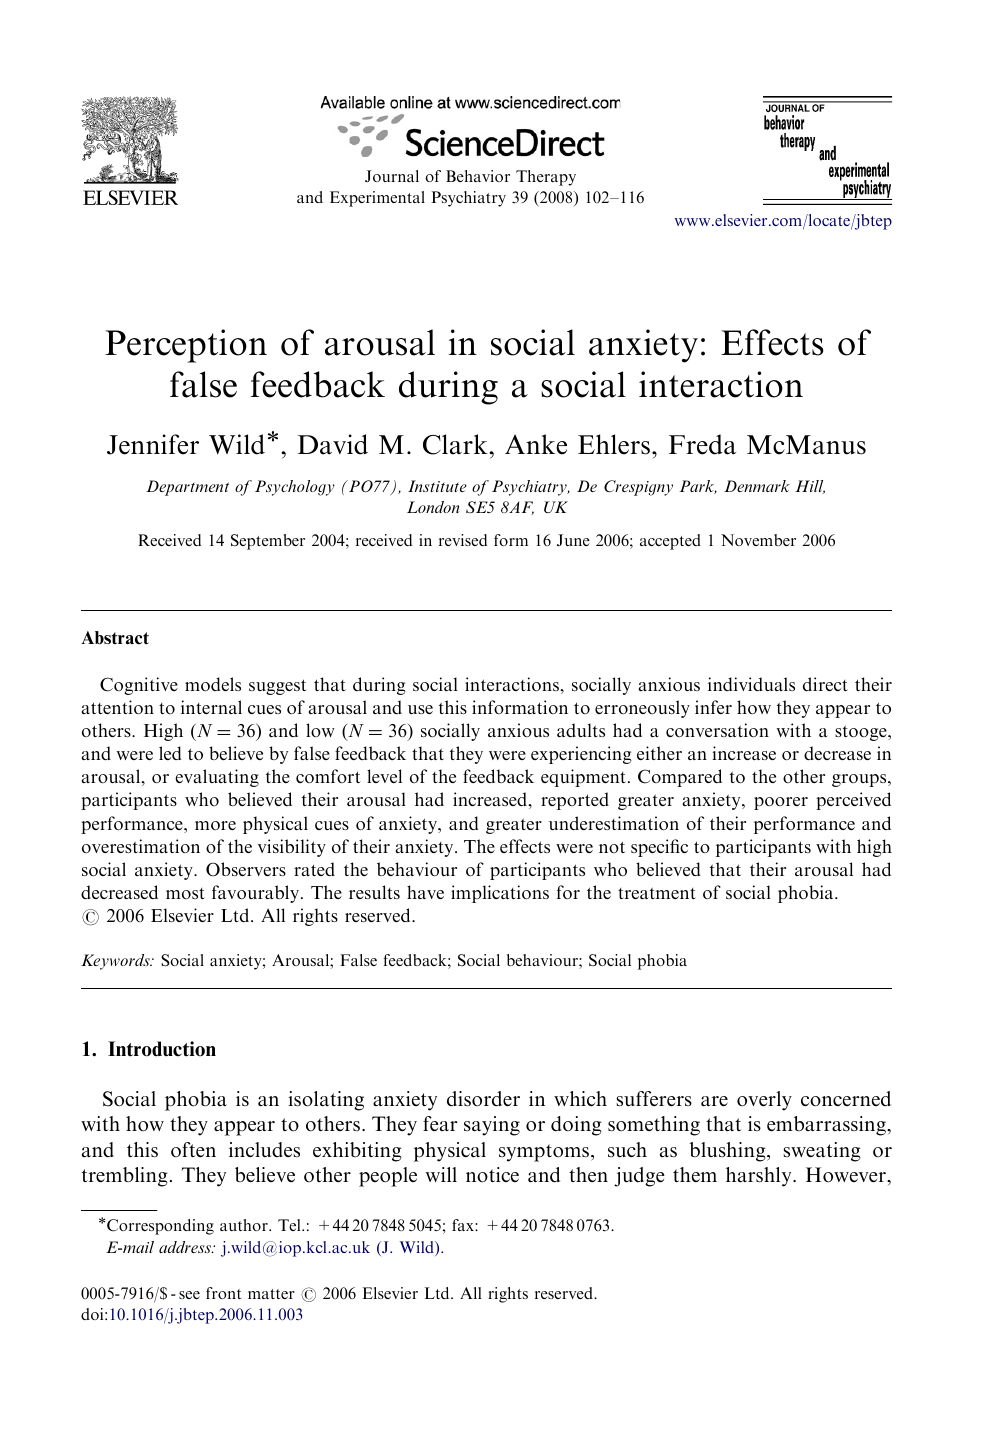 008 Psychology Research Paper On Social Anxiety Disorder Staggering Full